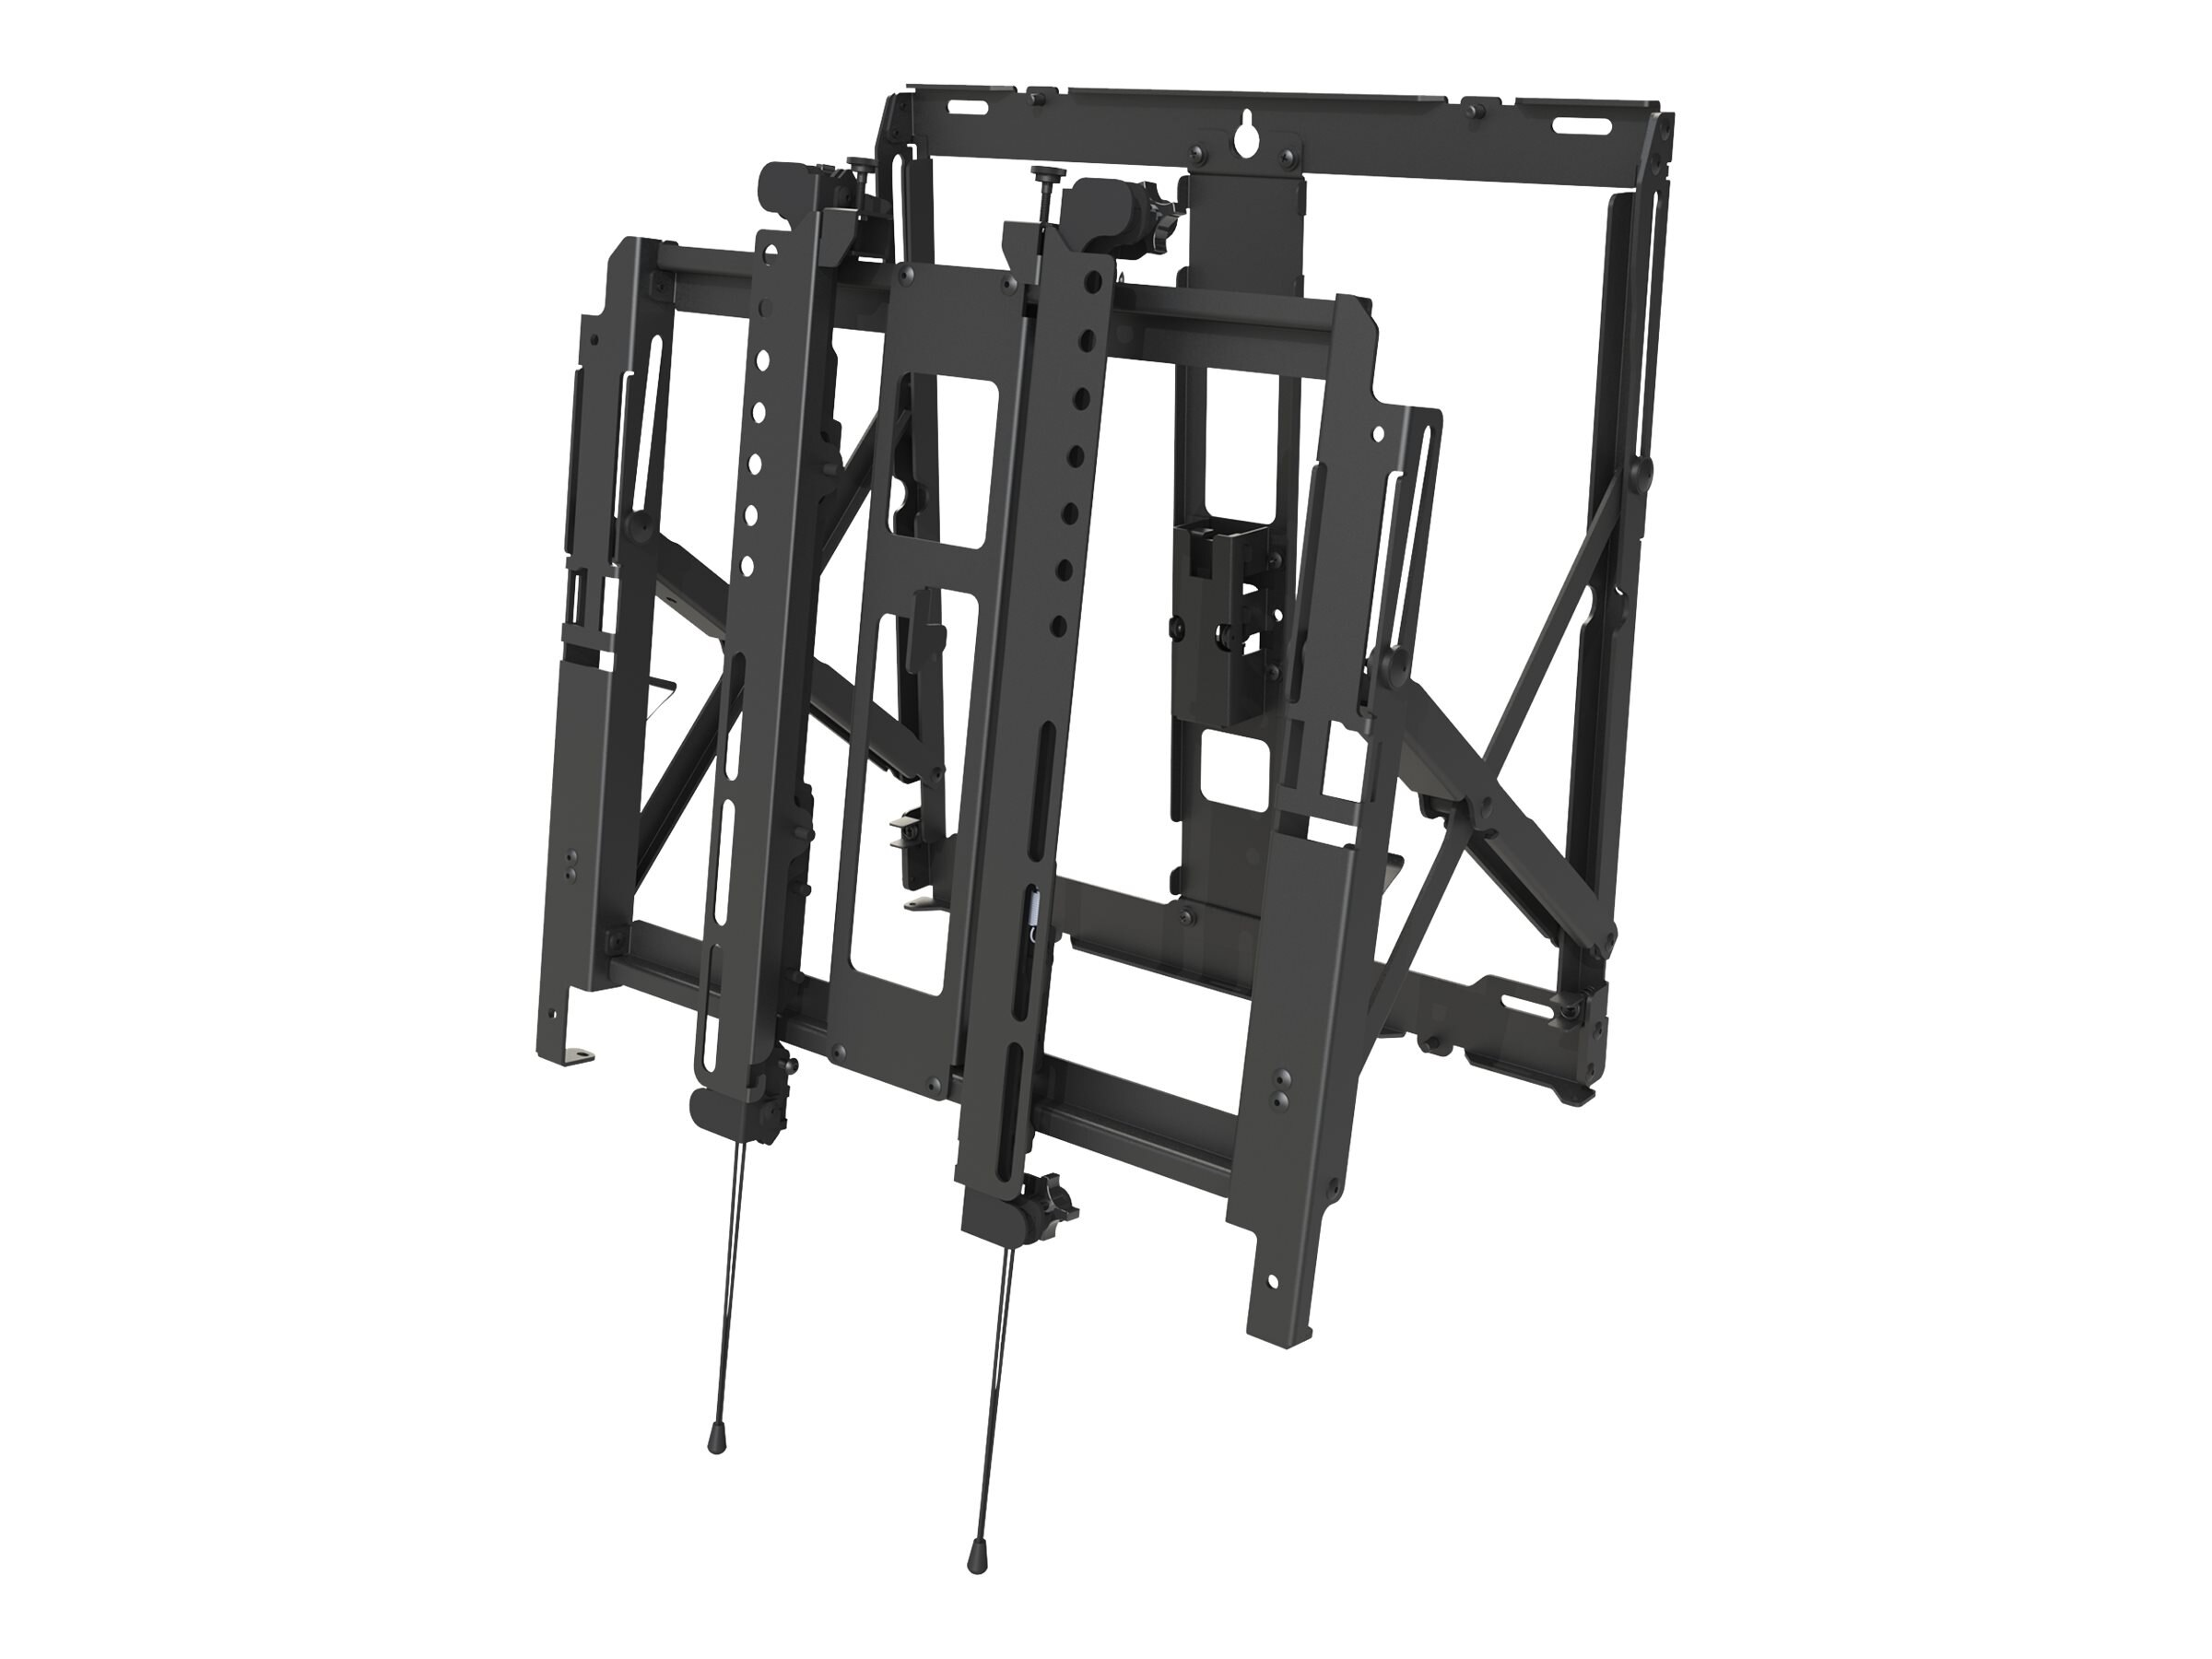 Peerless Full Service Thin Video Wall Mount with Quick Release for 40-65 Displays